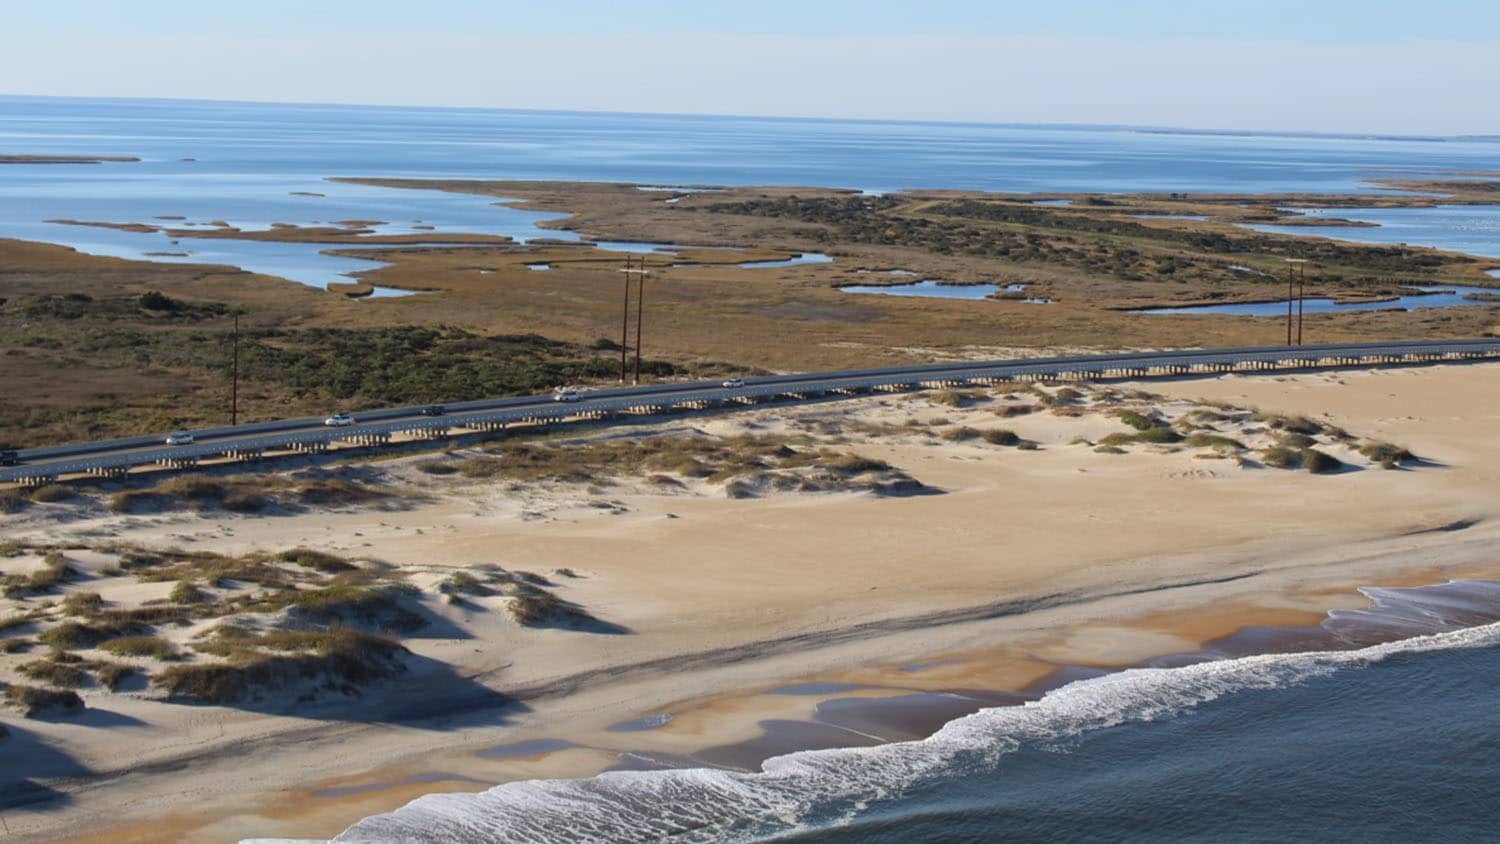 aerial photograph of the ocean, beach, dunes, a highway, and then wetlands